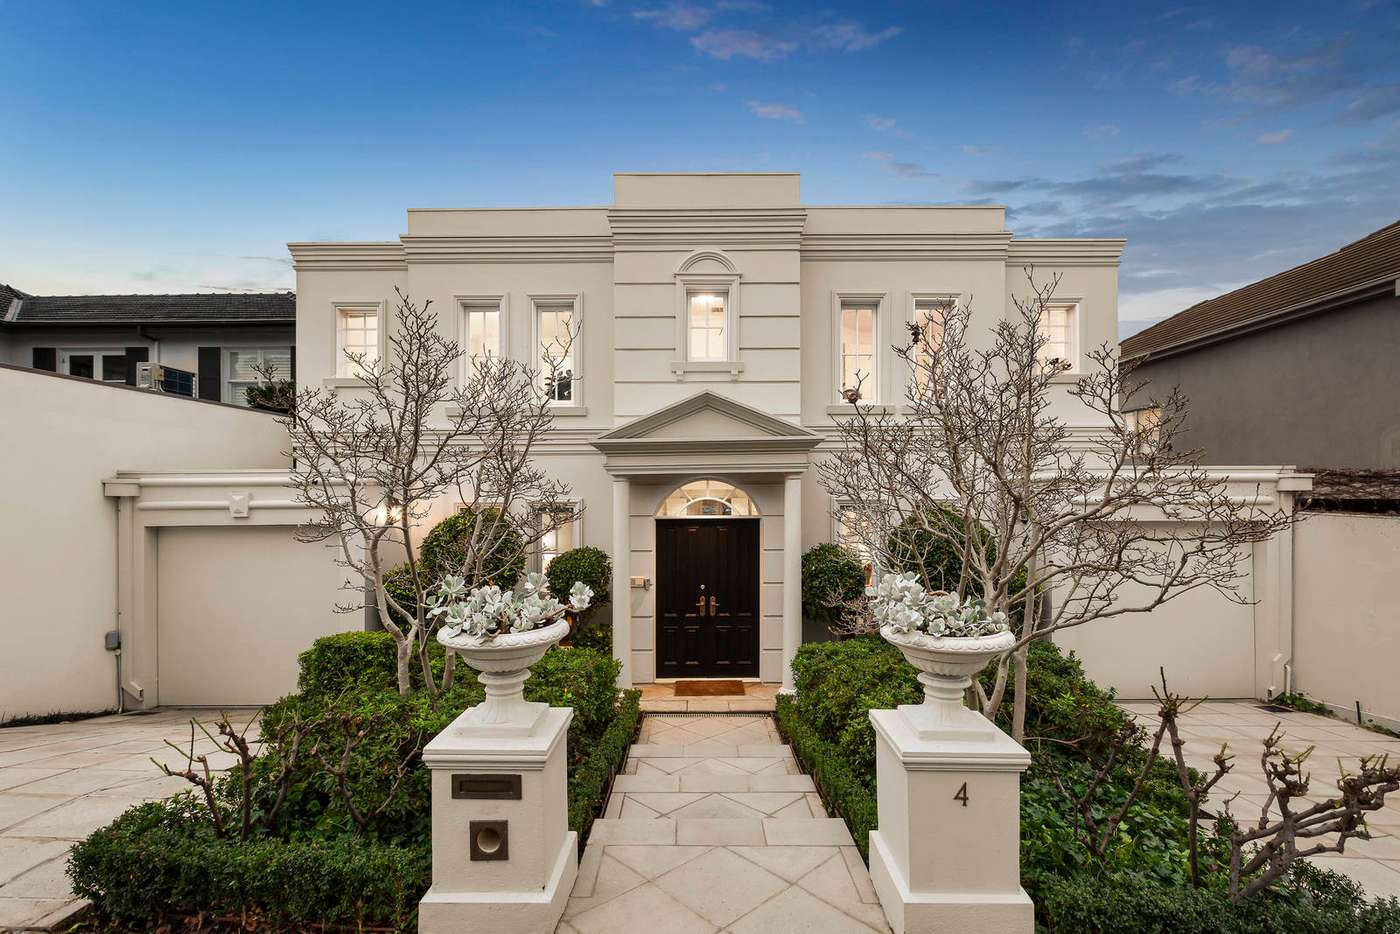 Main view of Homely house listing, 4 Balfour Street, Toorak VIC 3142